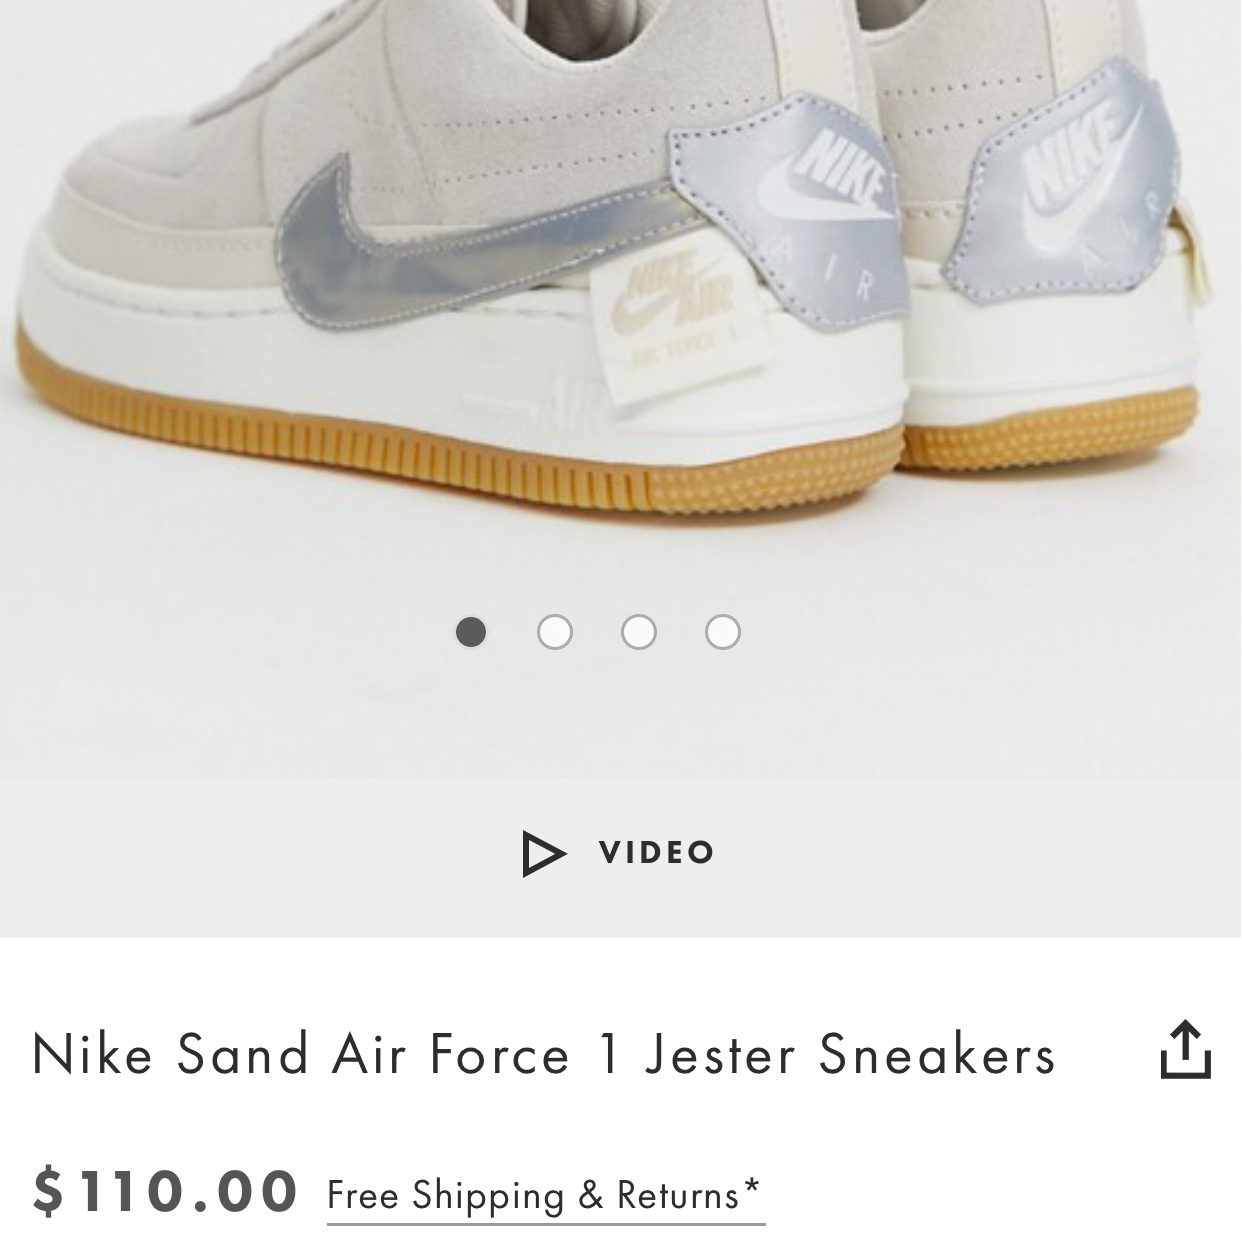 brand new nike air force 1s suede jester in desert Depop